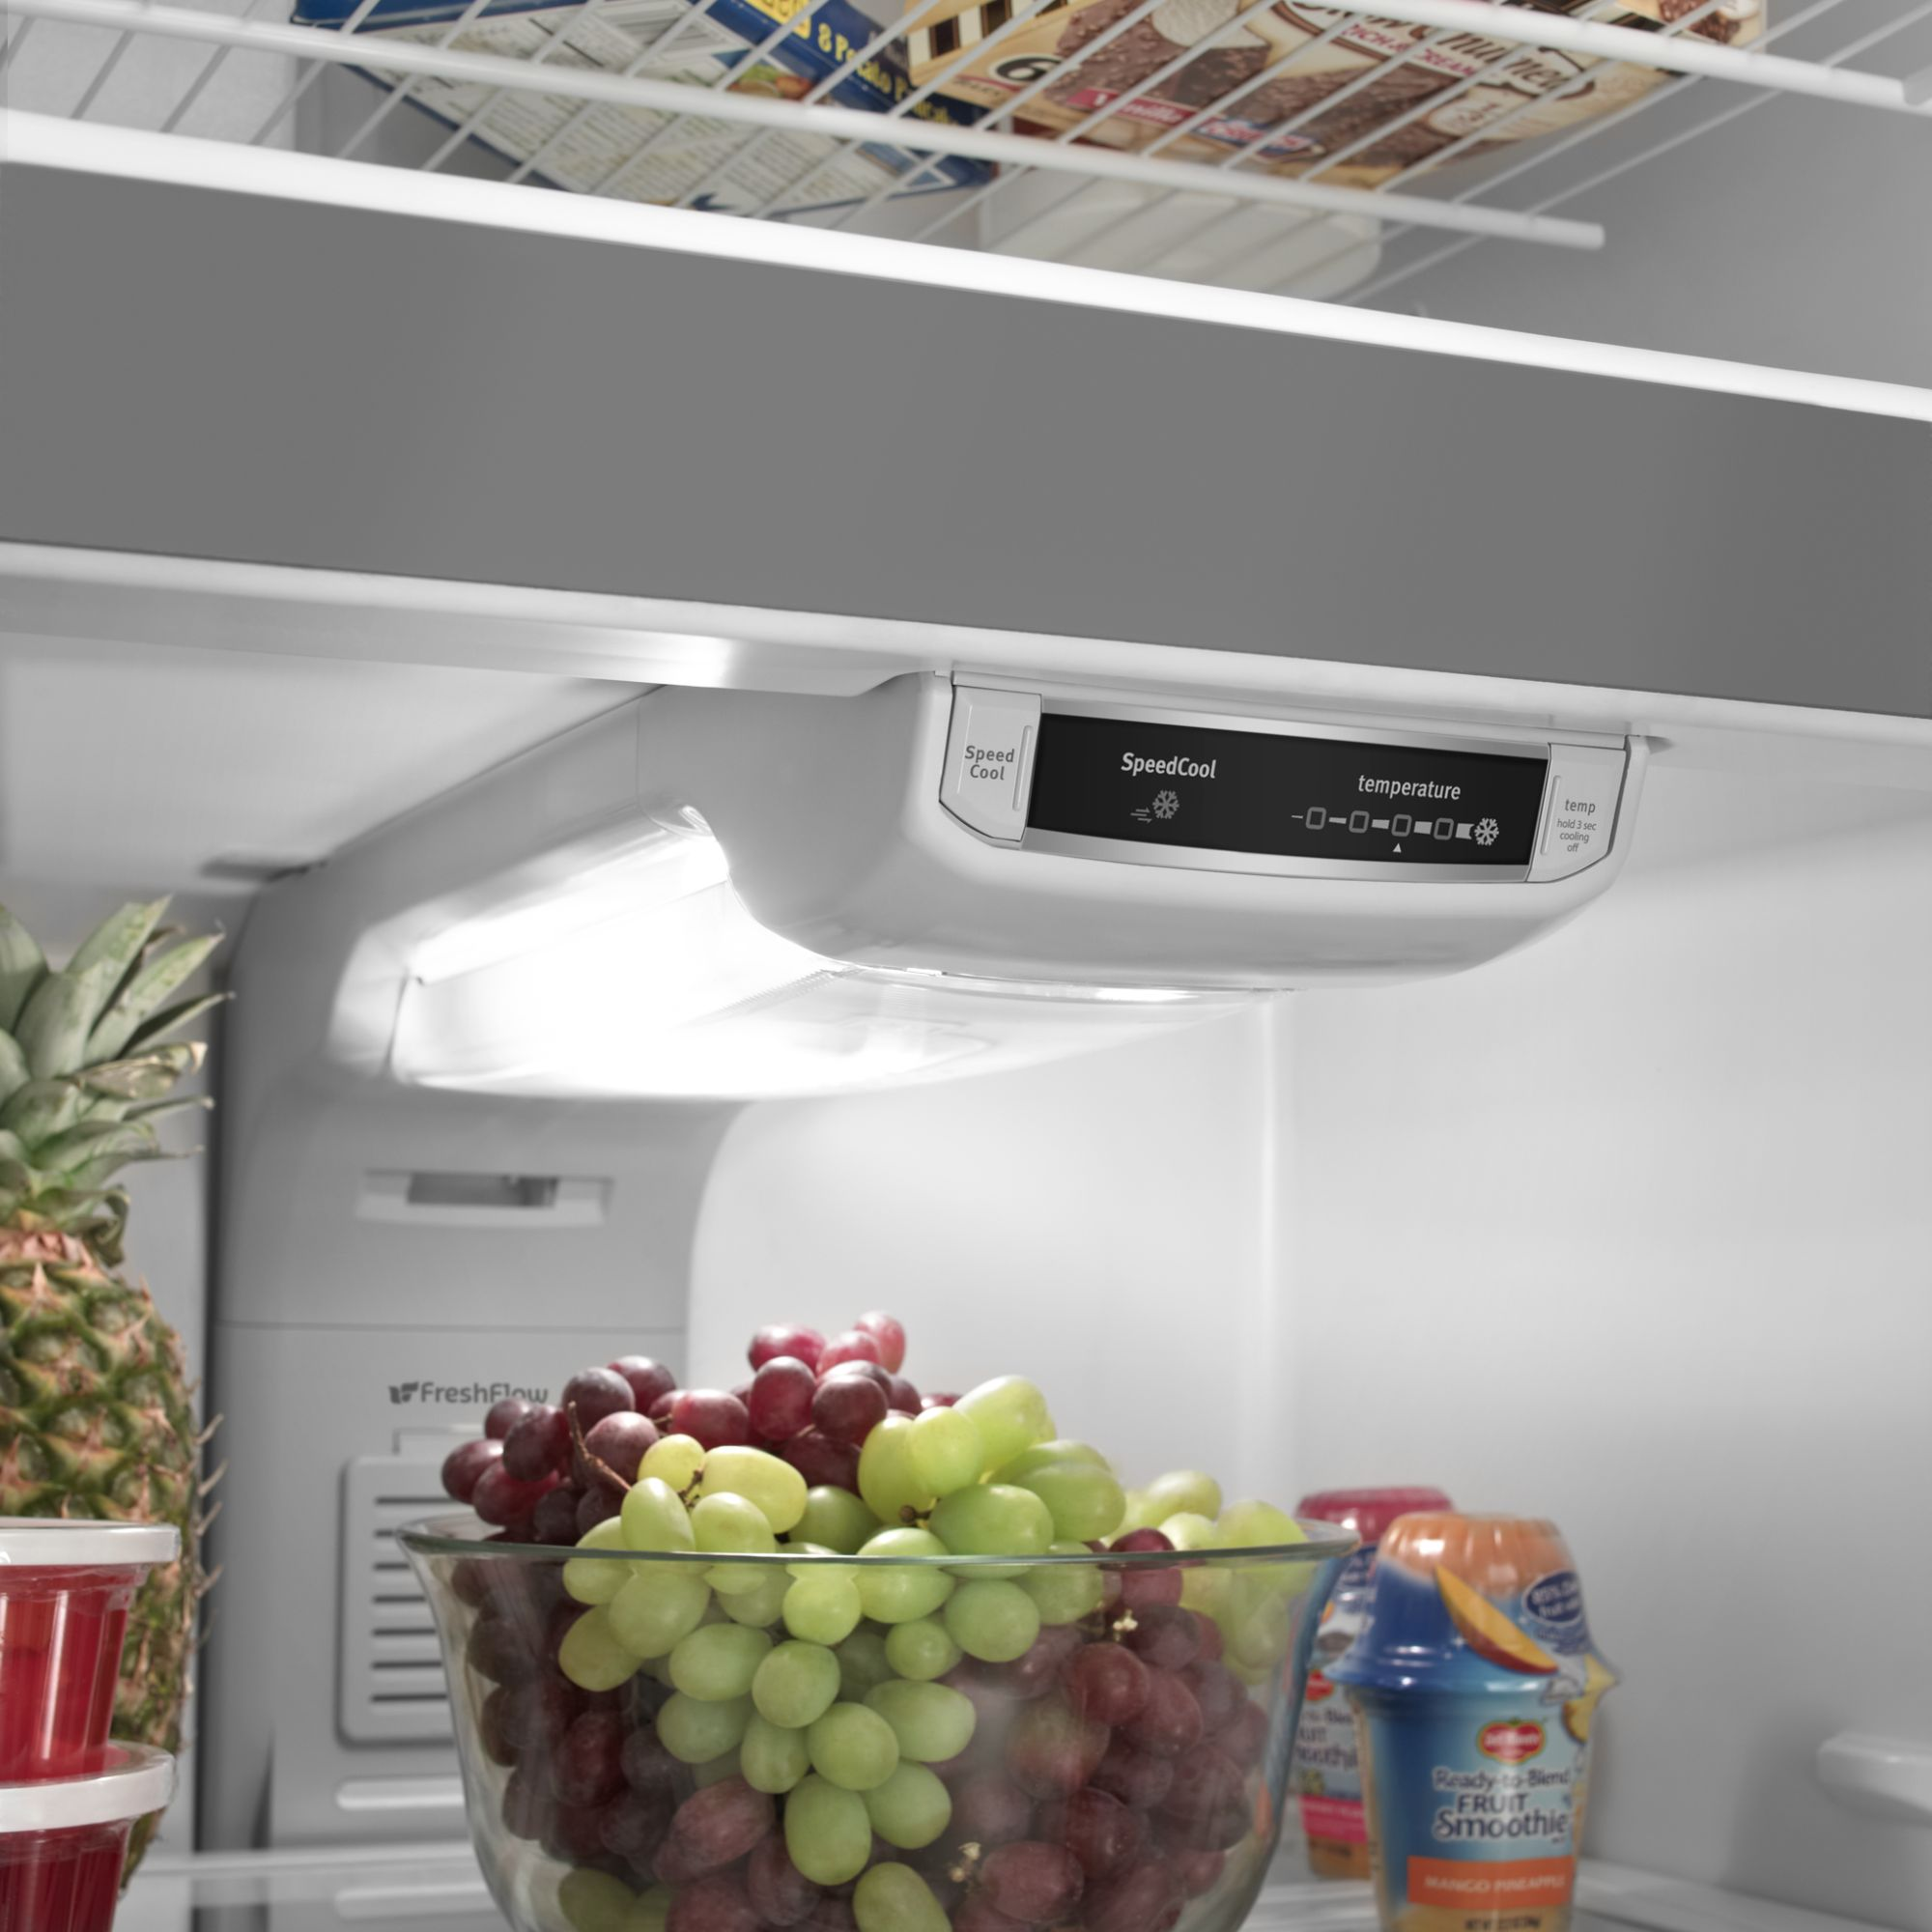 Maytag 18.9 cu. ft. Top-Freezer Refrigerator w/ Strongbox™ Door Bins - Stainless Steel